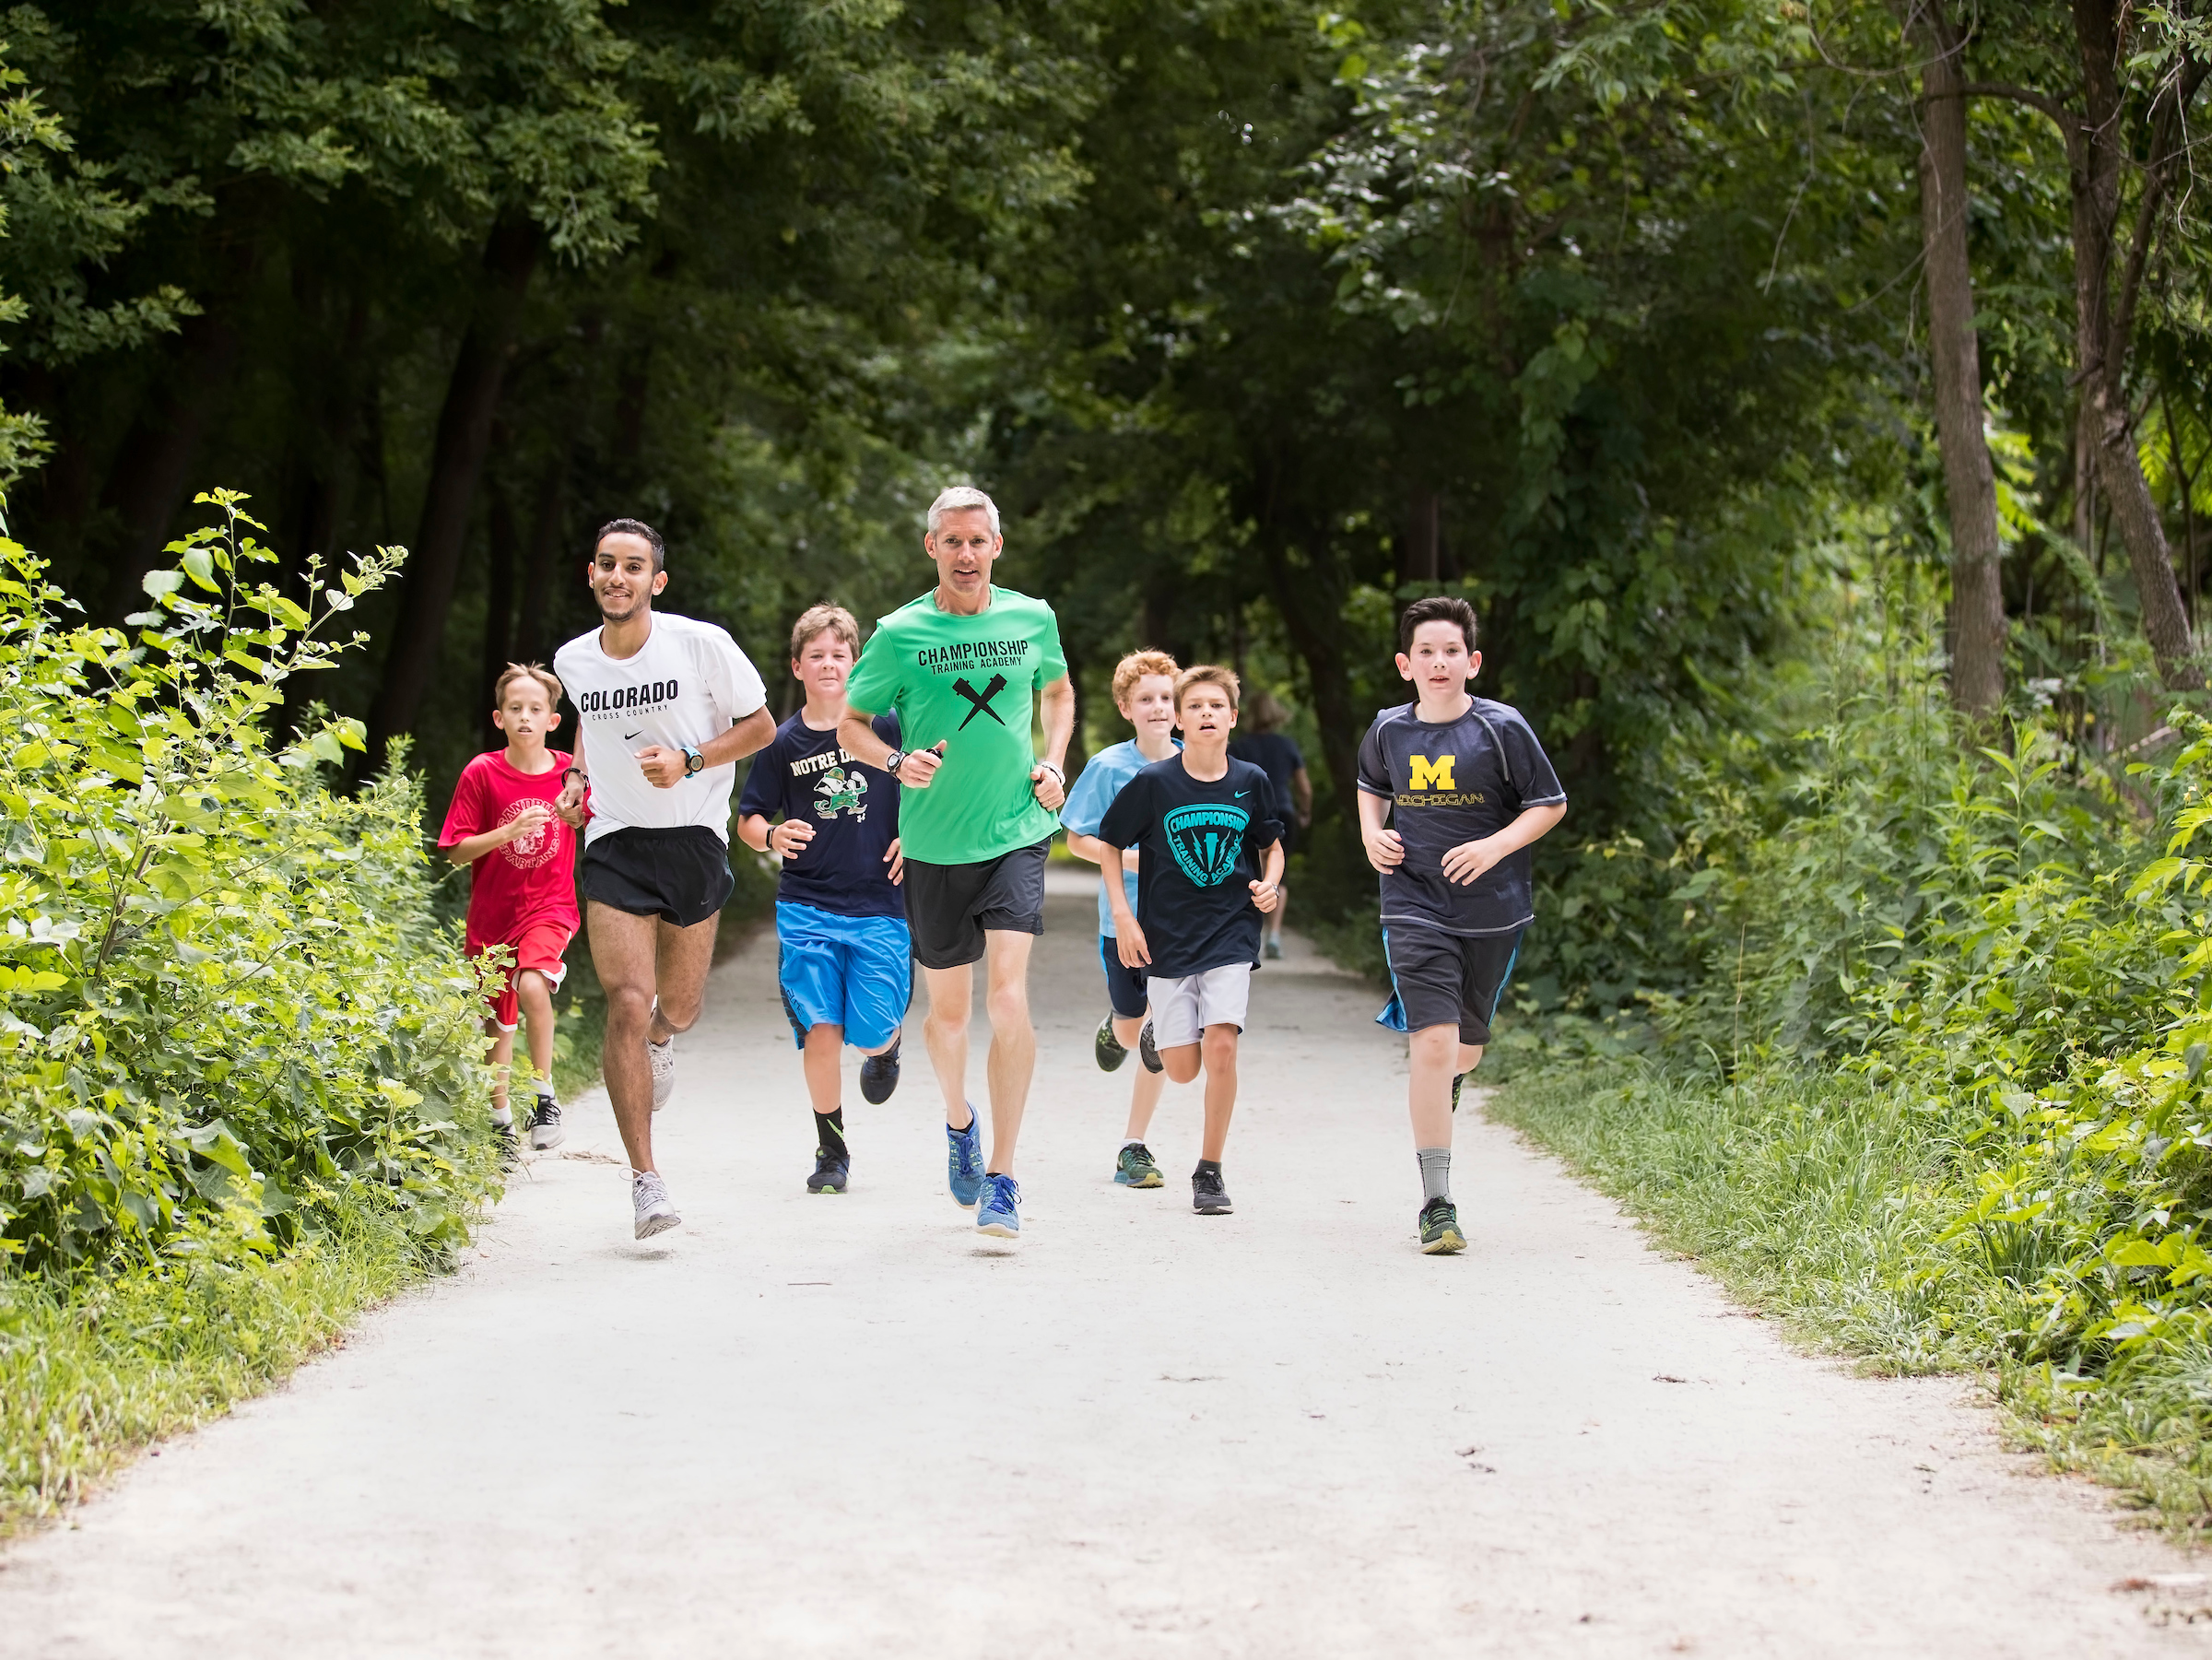 Collegiate runner Ammar Moussa running with the campers